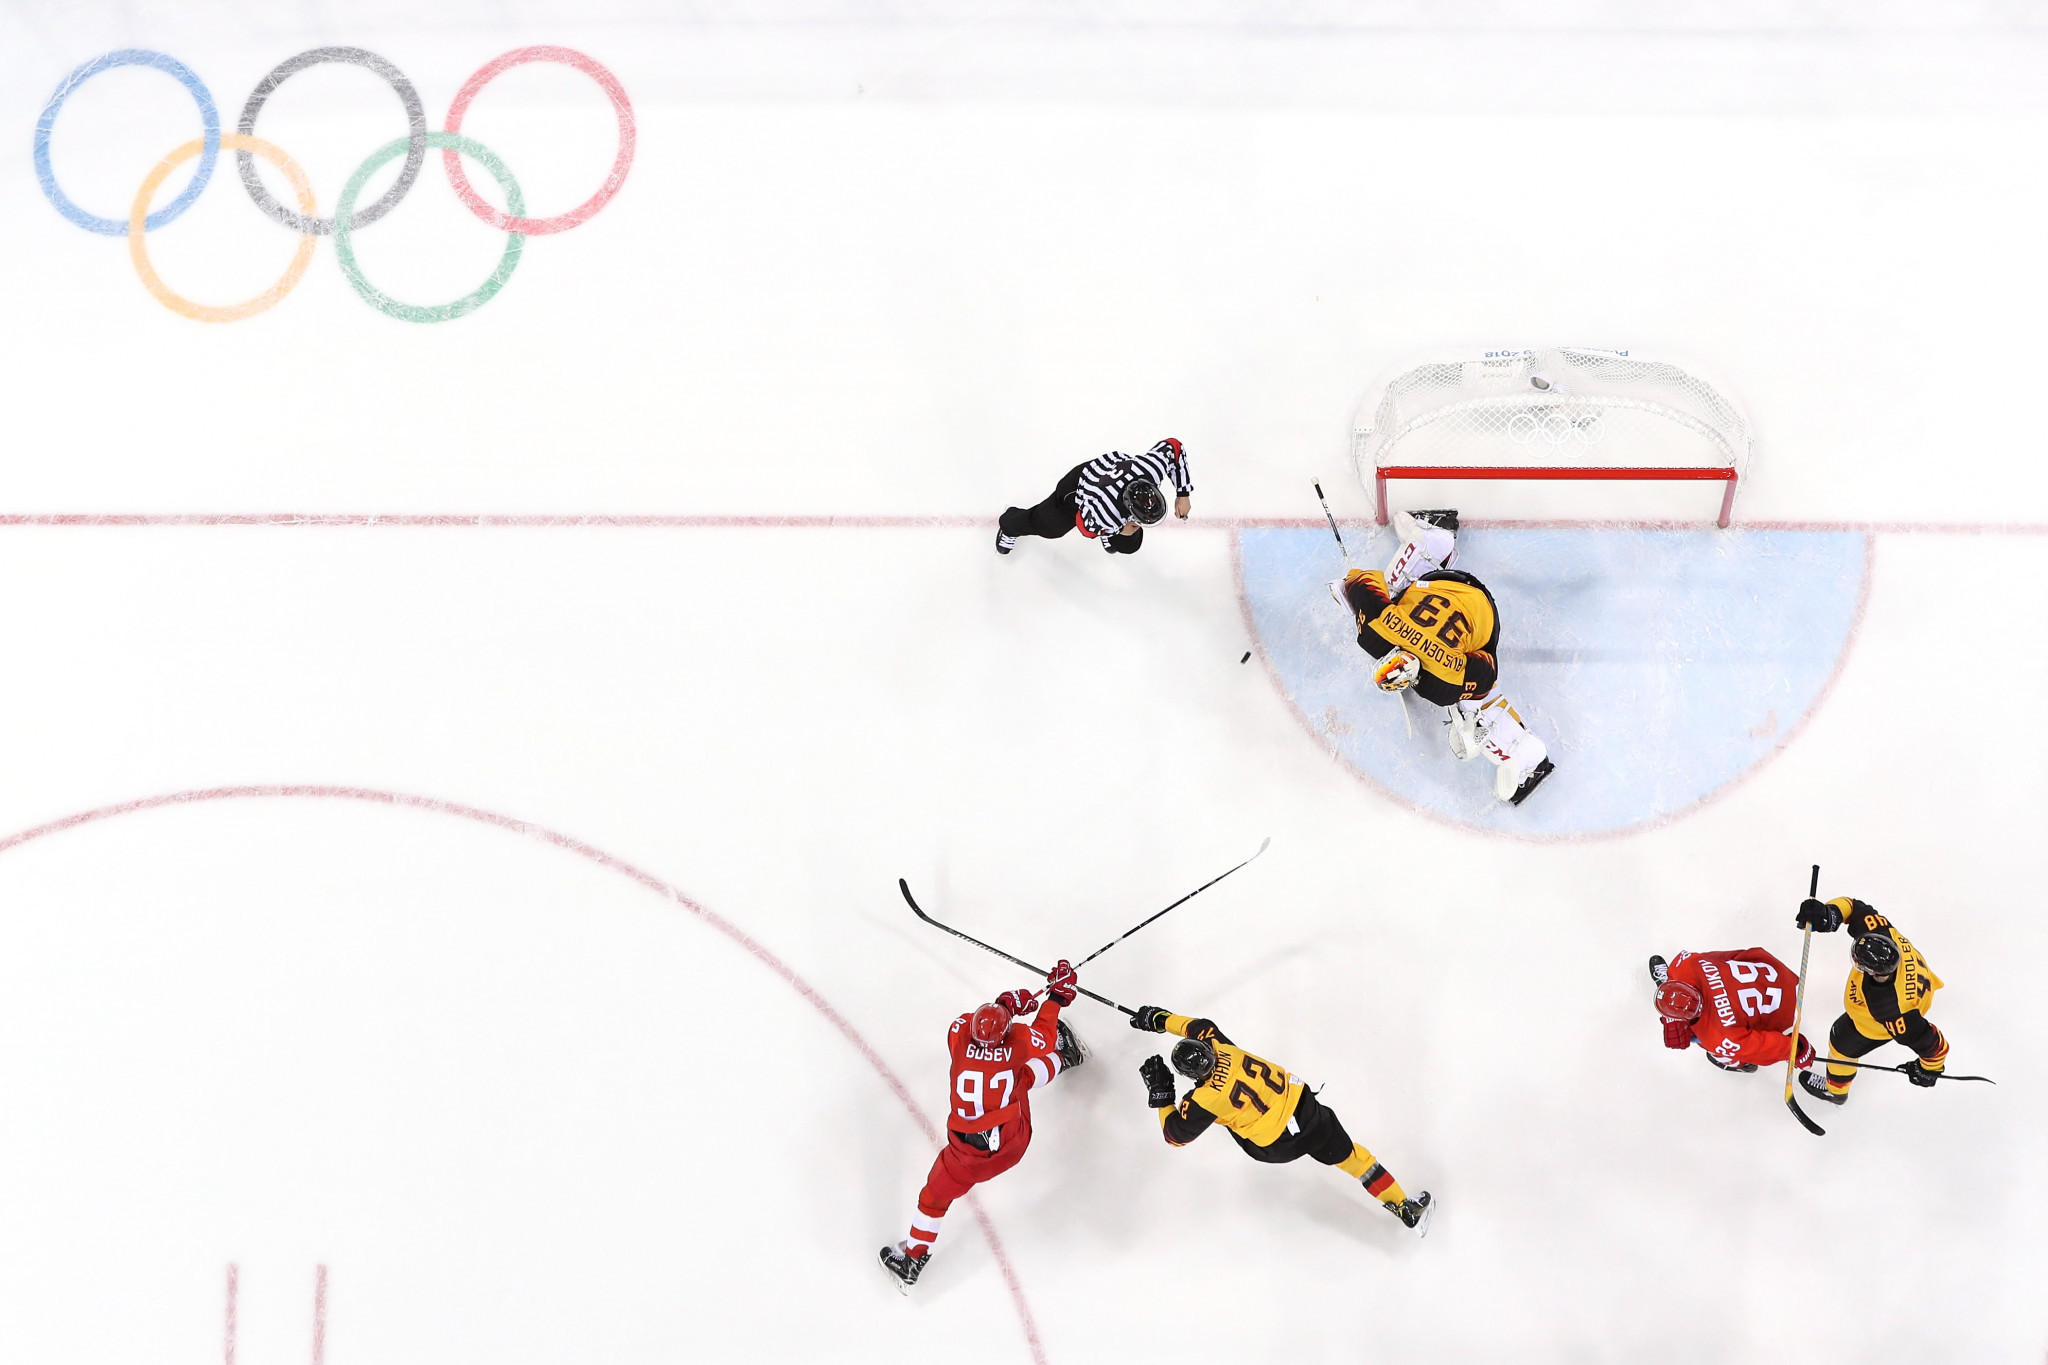 Deal agreed for NHL players to feature at Beijing 2022 Winter Olympics